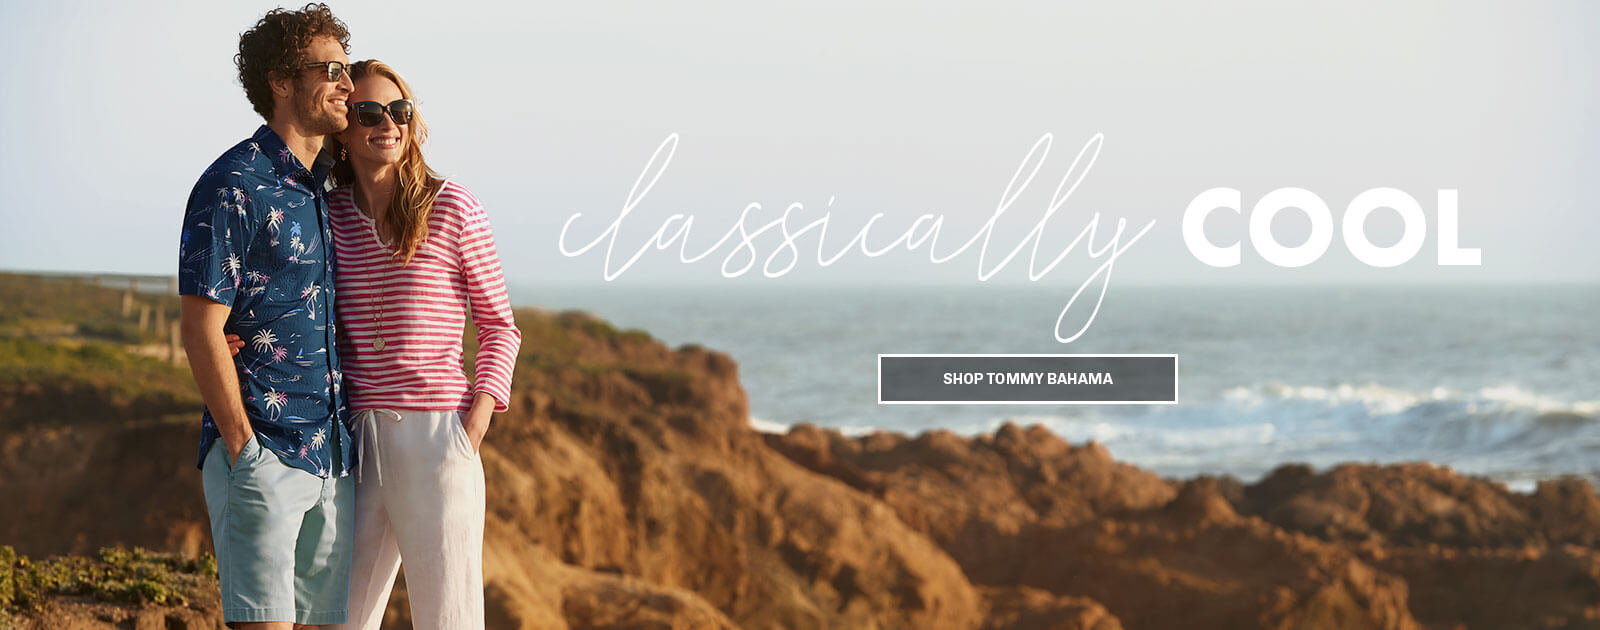 classically cool tommy bahama mens clothing